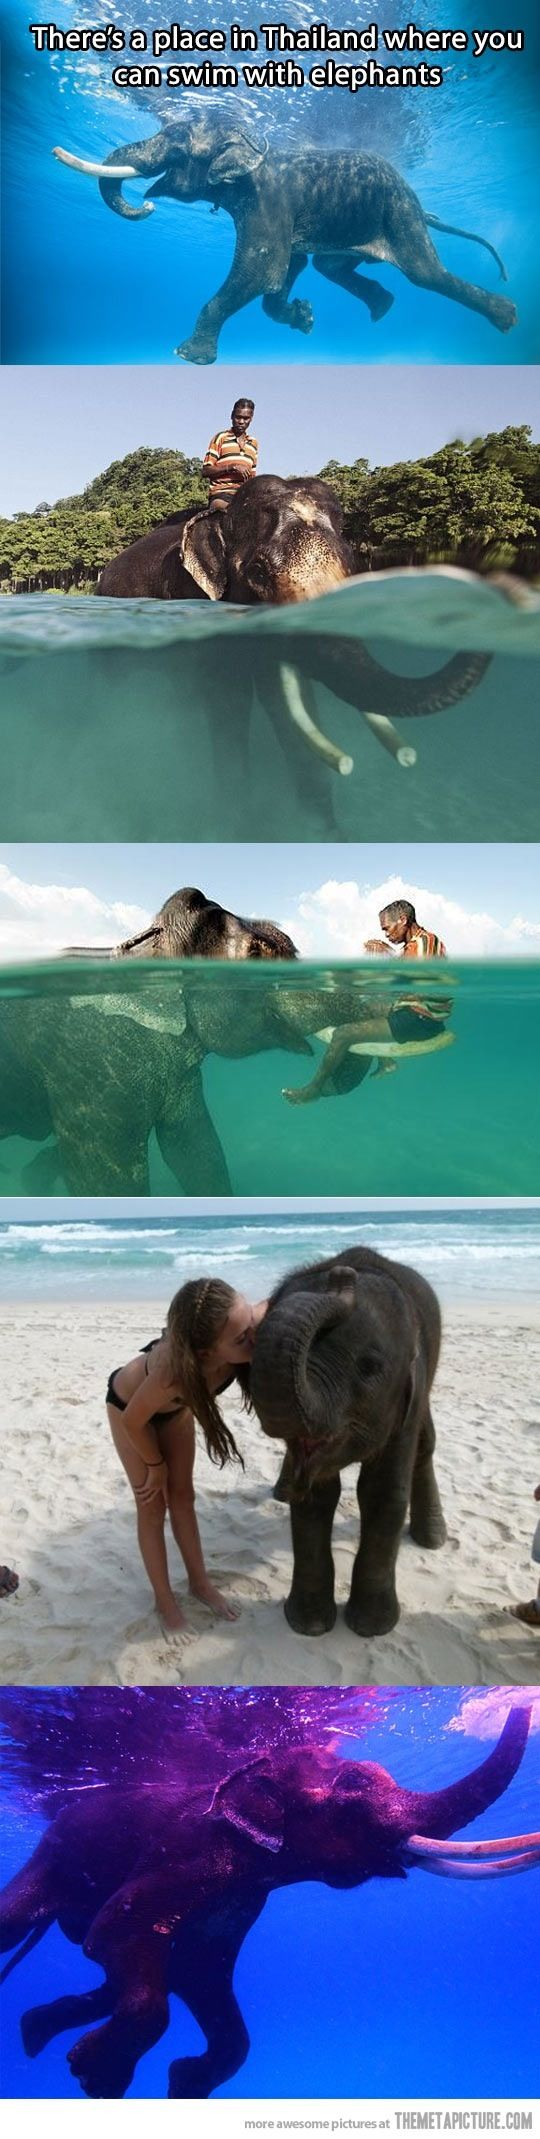 It would be really fun to swim with elephants. Preferably with my family so I can spend more time with them.